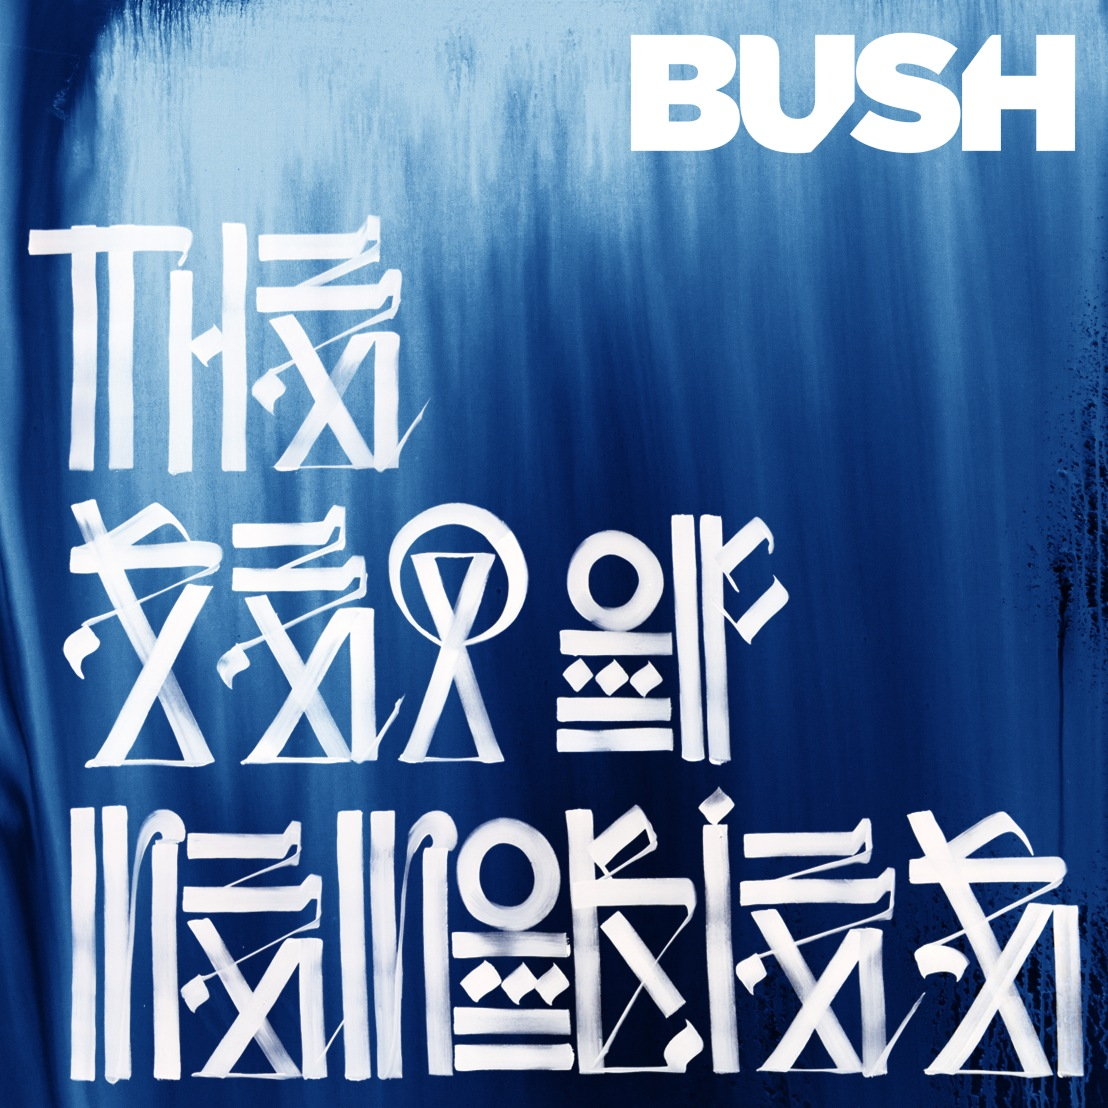 Bush Album Covers